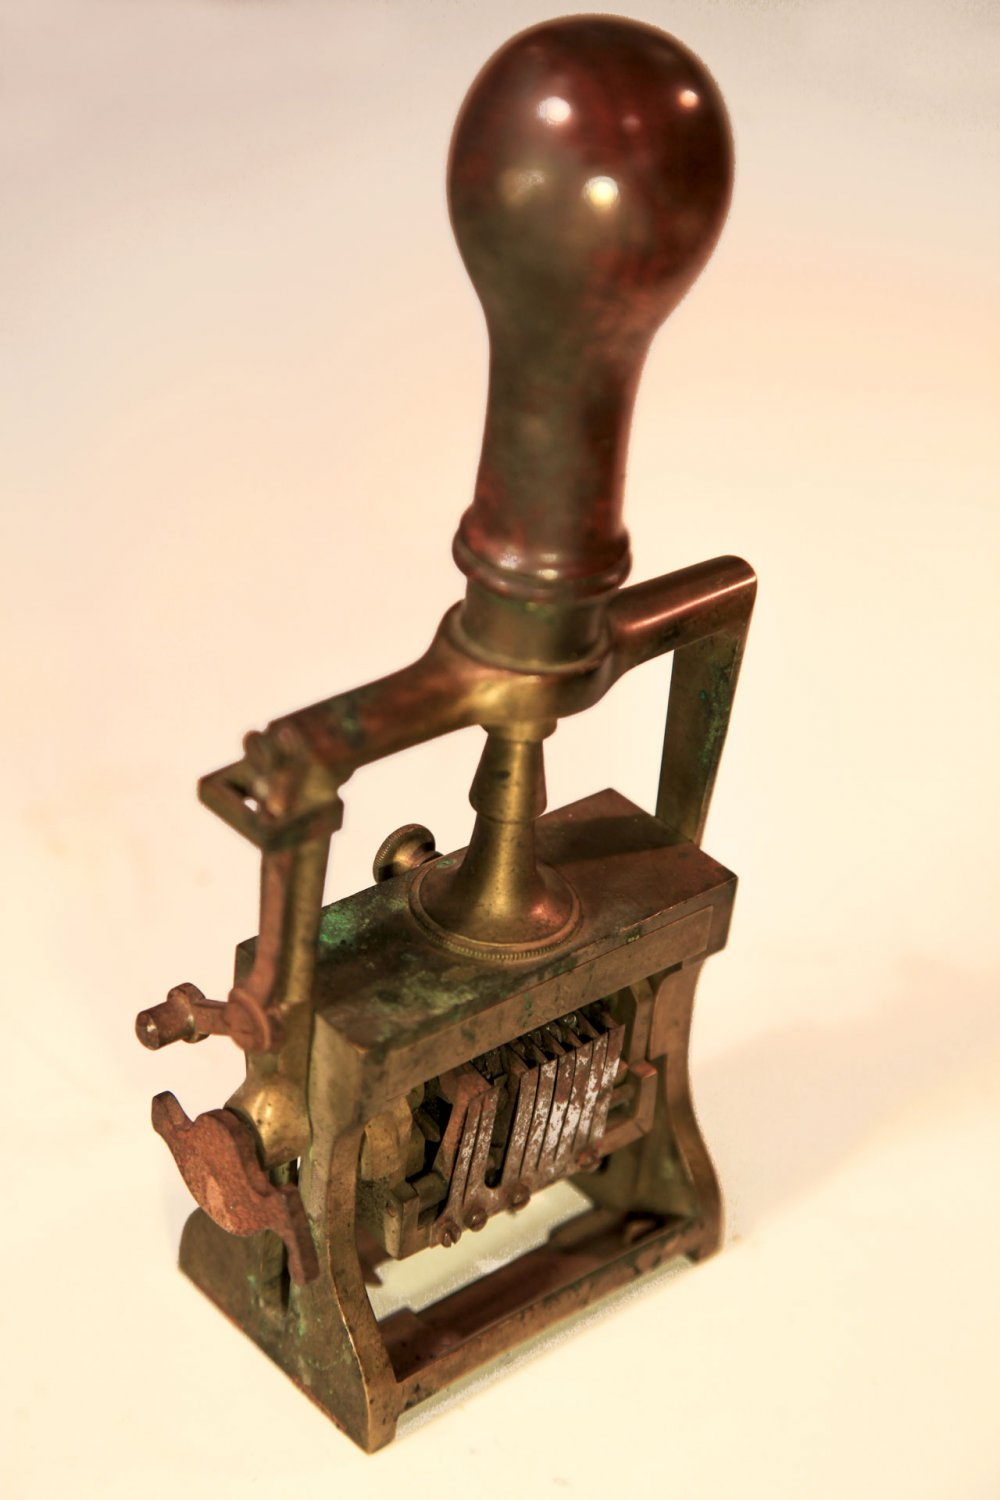 A set of mechanical stamps., 1903